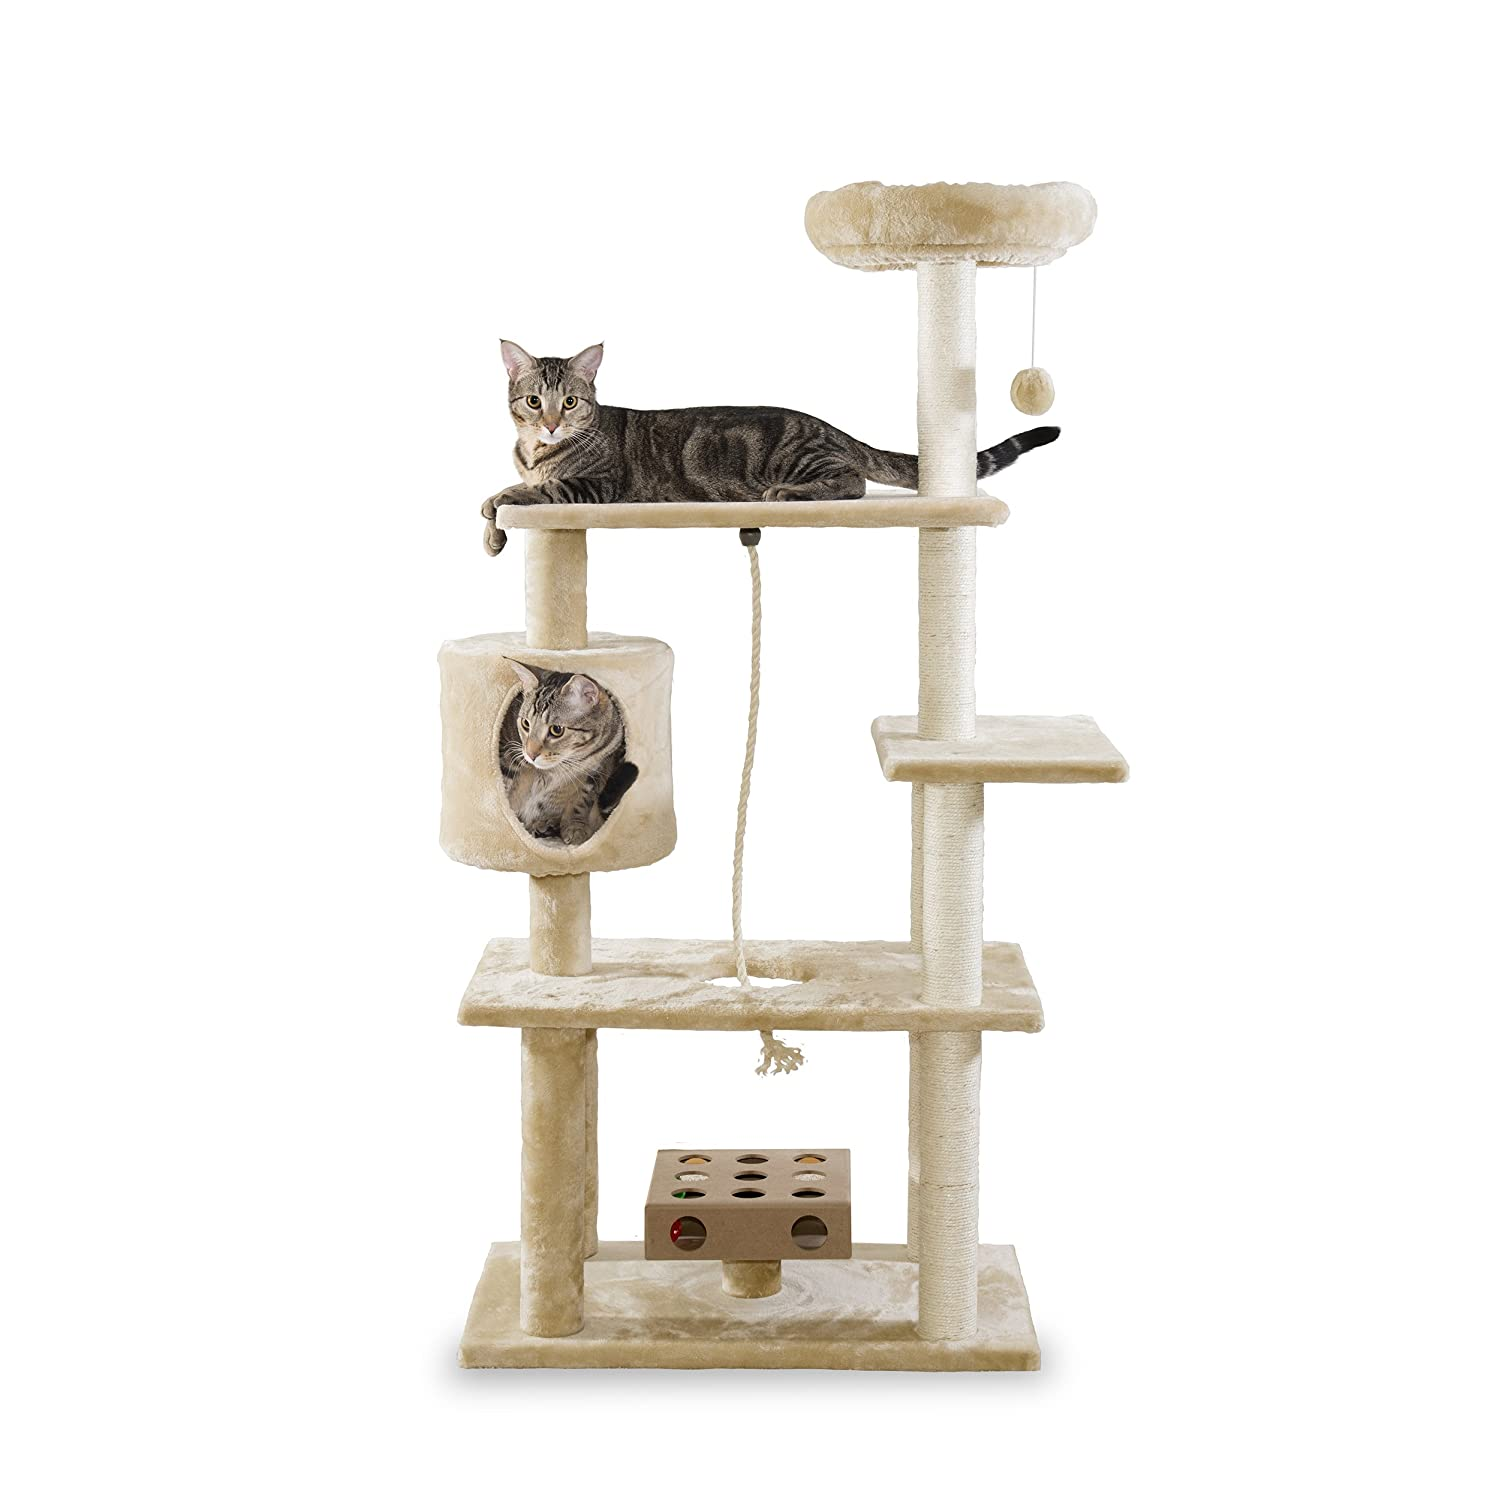 Deluxe Playground Cream Furhaven Pet Deluxe Cat Tree Playground with Cat-IQ Toy